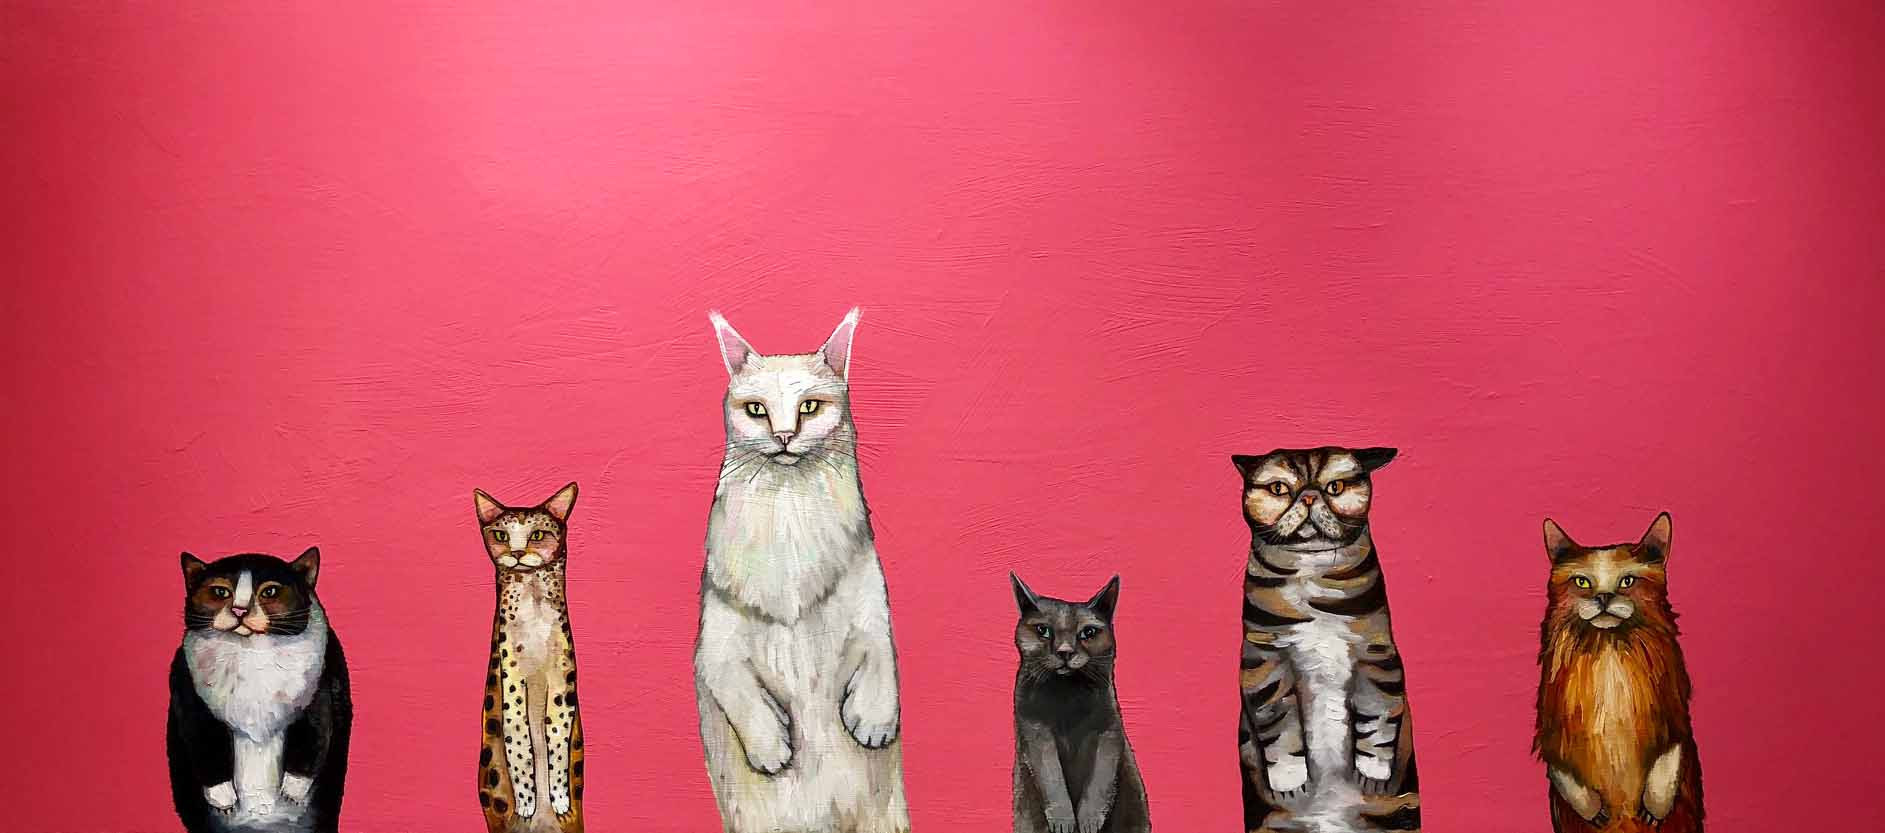 """Cats  36"""" x 80""""  $4100  Oil and acrylic on wood. This is an original oil painting. The sides are painted gloss black and there is a wire on the back so it is ready to hang with no framing needed.   Contact eli@elihalpin.com for purchasing. Payment plans accepted."""